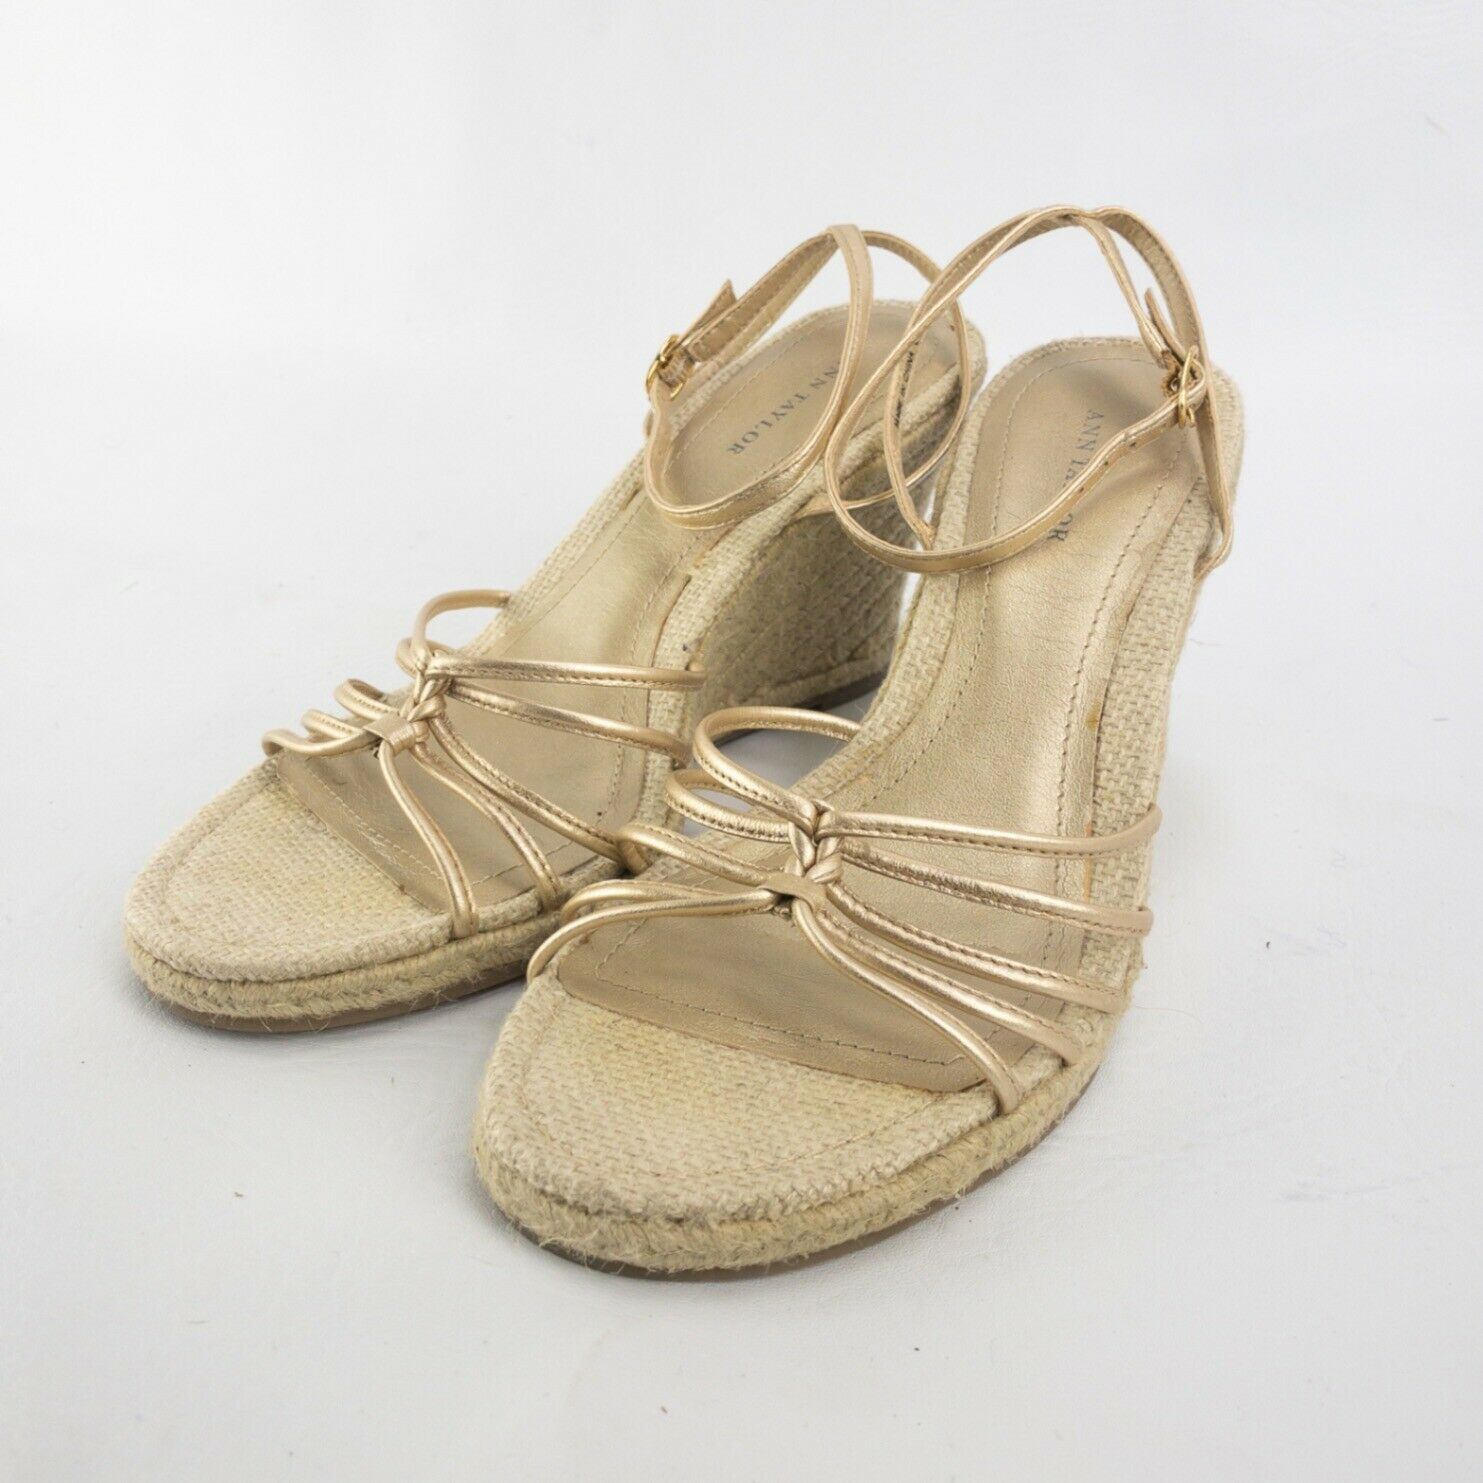 Ann Taylor Womens Cream Strappy Ankle Strap Wedge Heel Sandal Size US 8